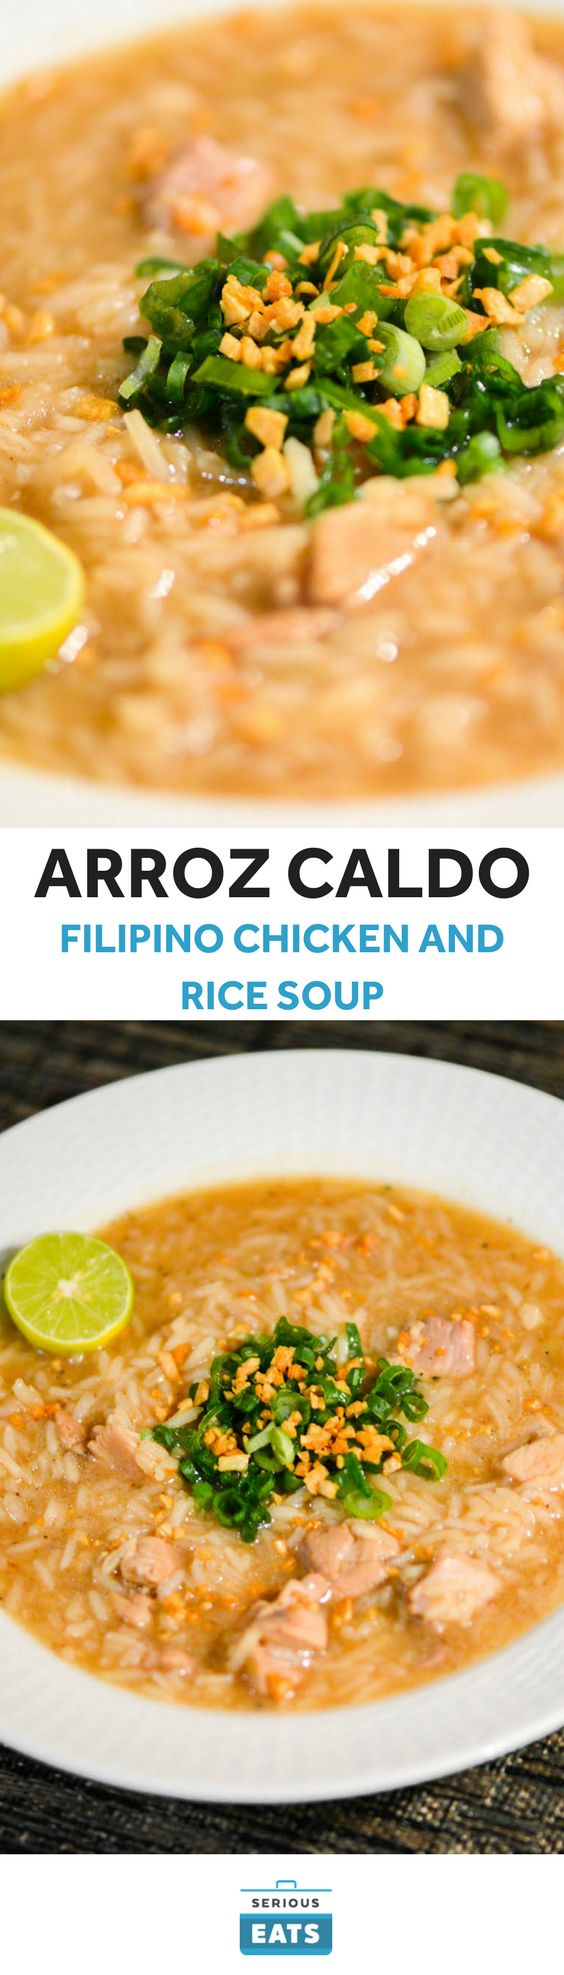 You're probably familiar with Chinese congee, but have you tried arroz caldo, its Filipino cousin? This simple, comforting rice porridge is made with tender chicken thighs and a pungent mix of ginger, garlic, and fish sauce. Don't forget about the fried garlic garnish—crispy and assertive, it's just about the best part of the dish.